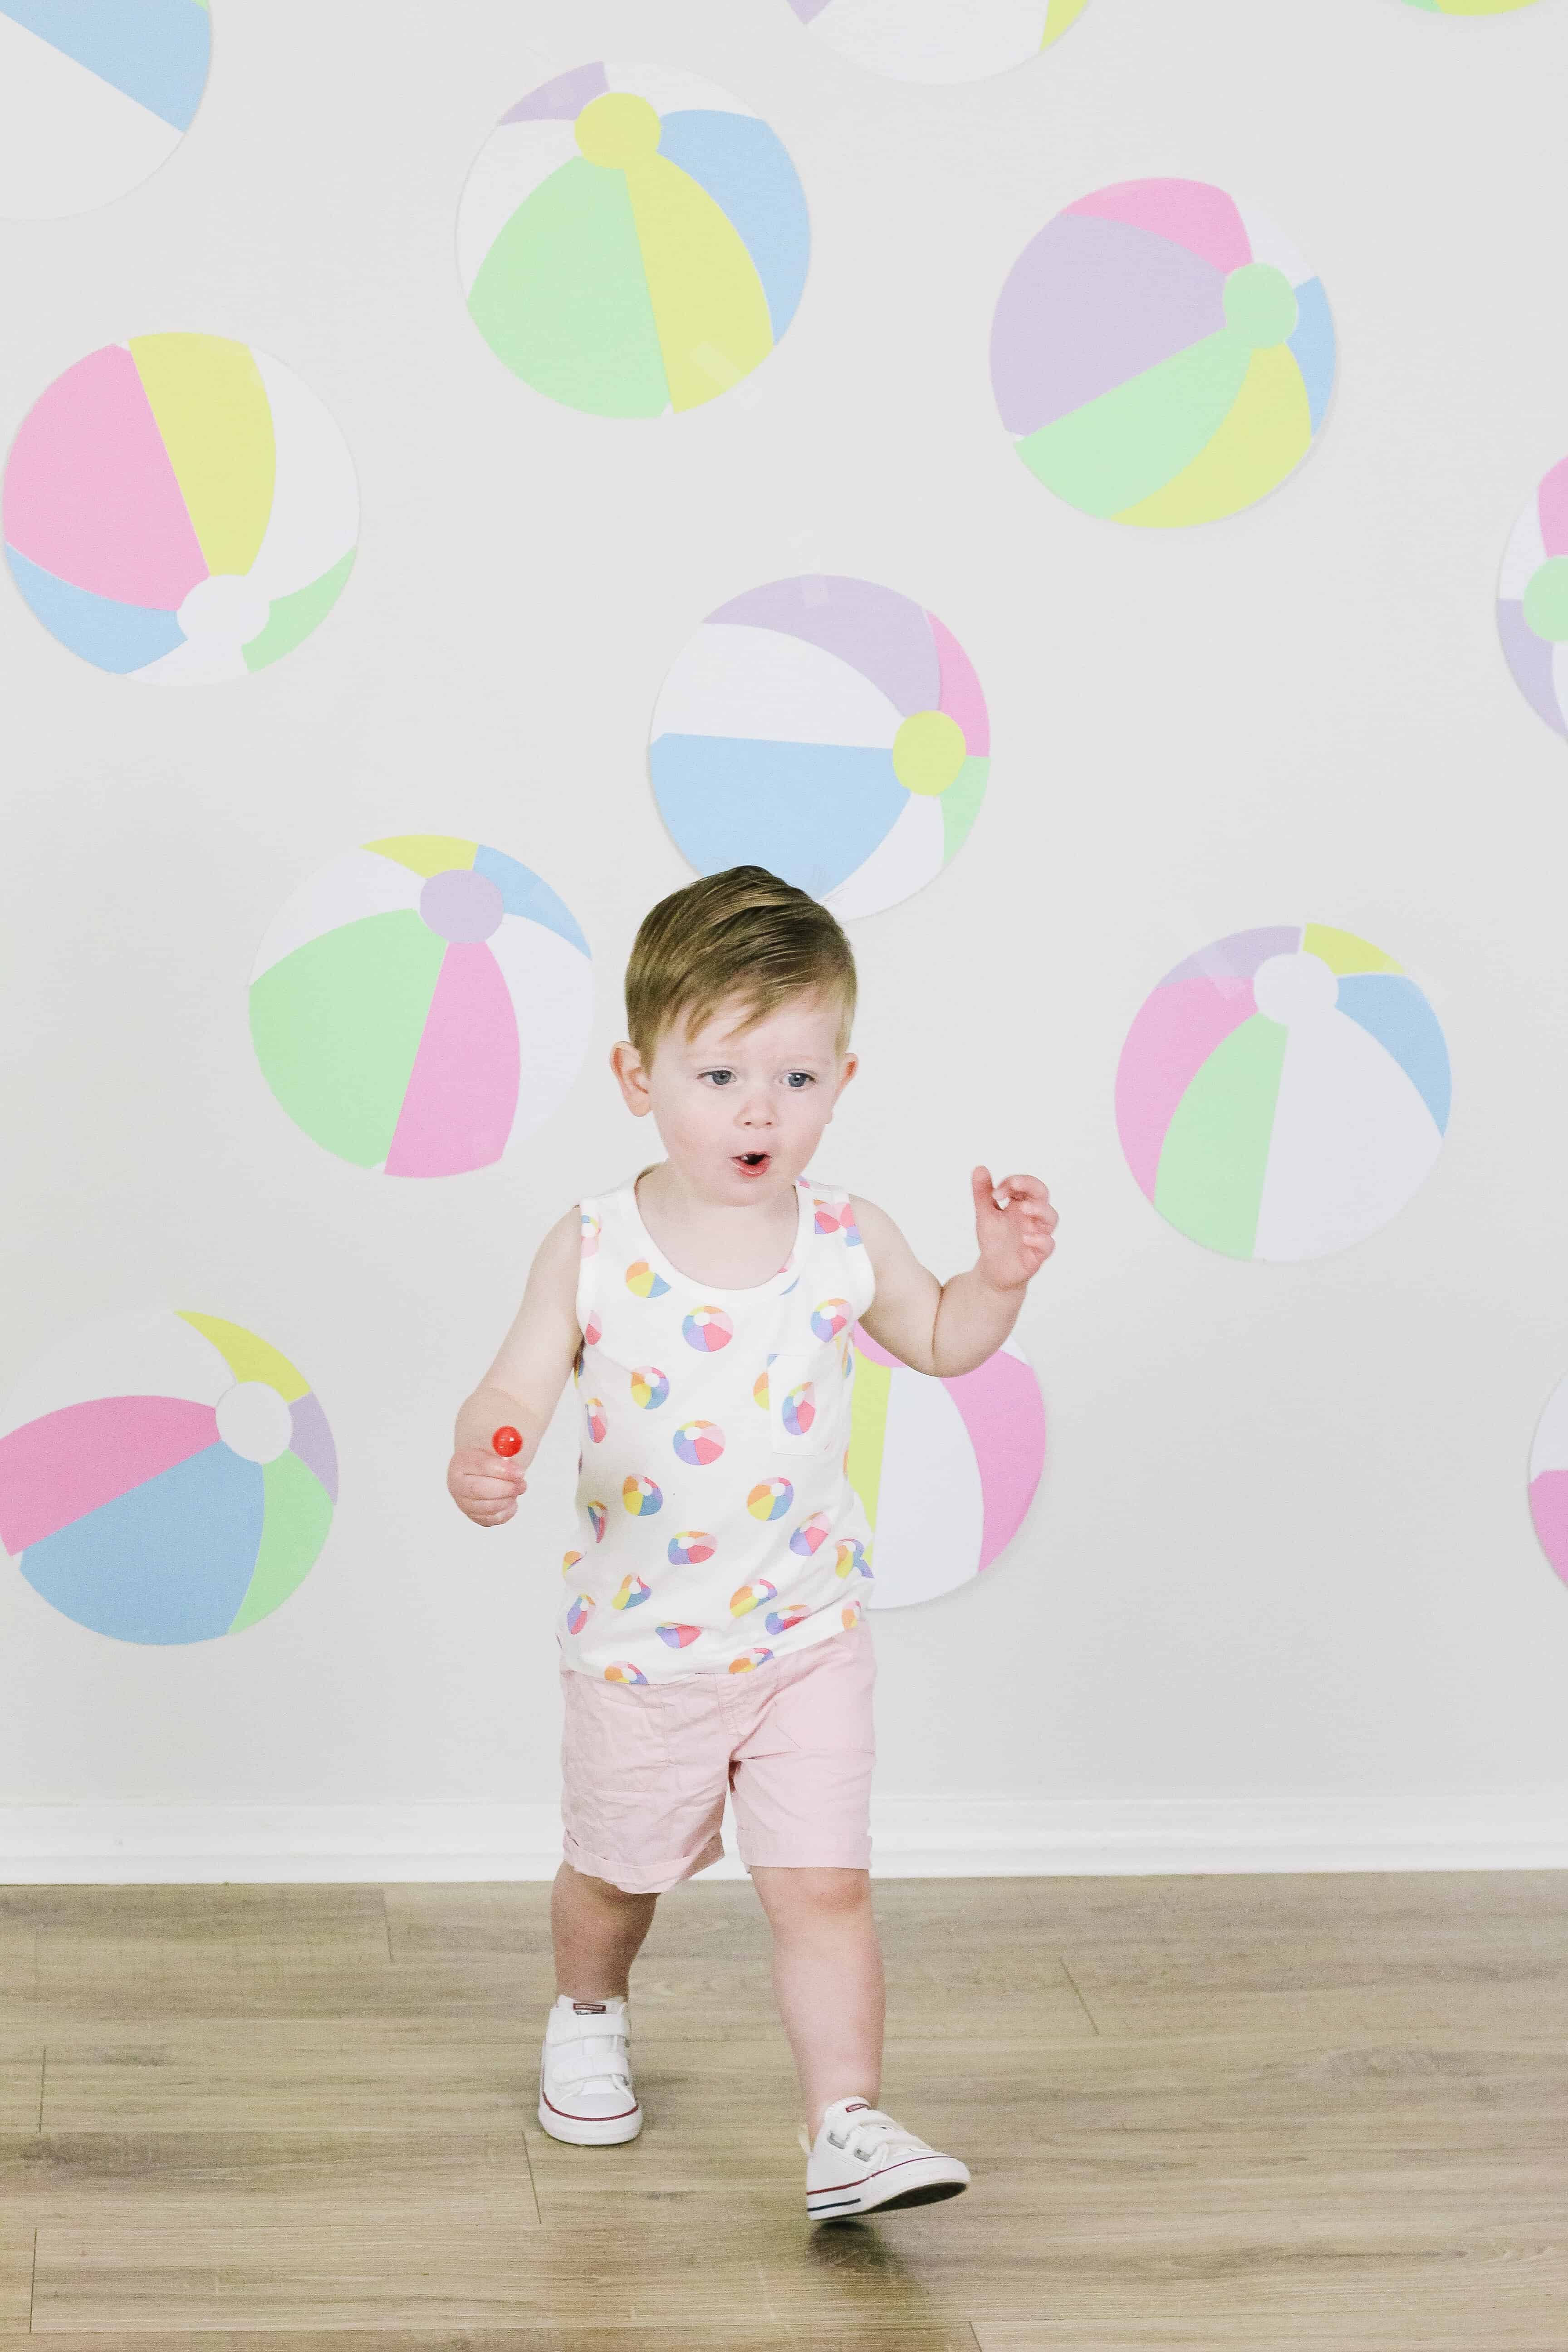 Toddler in beach ball outfit in front of beach ball wall